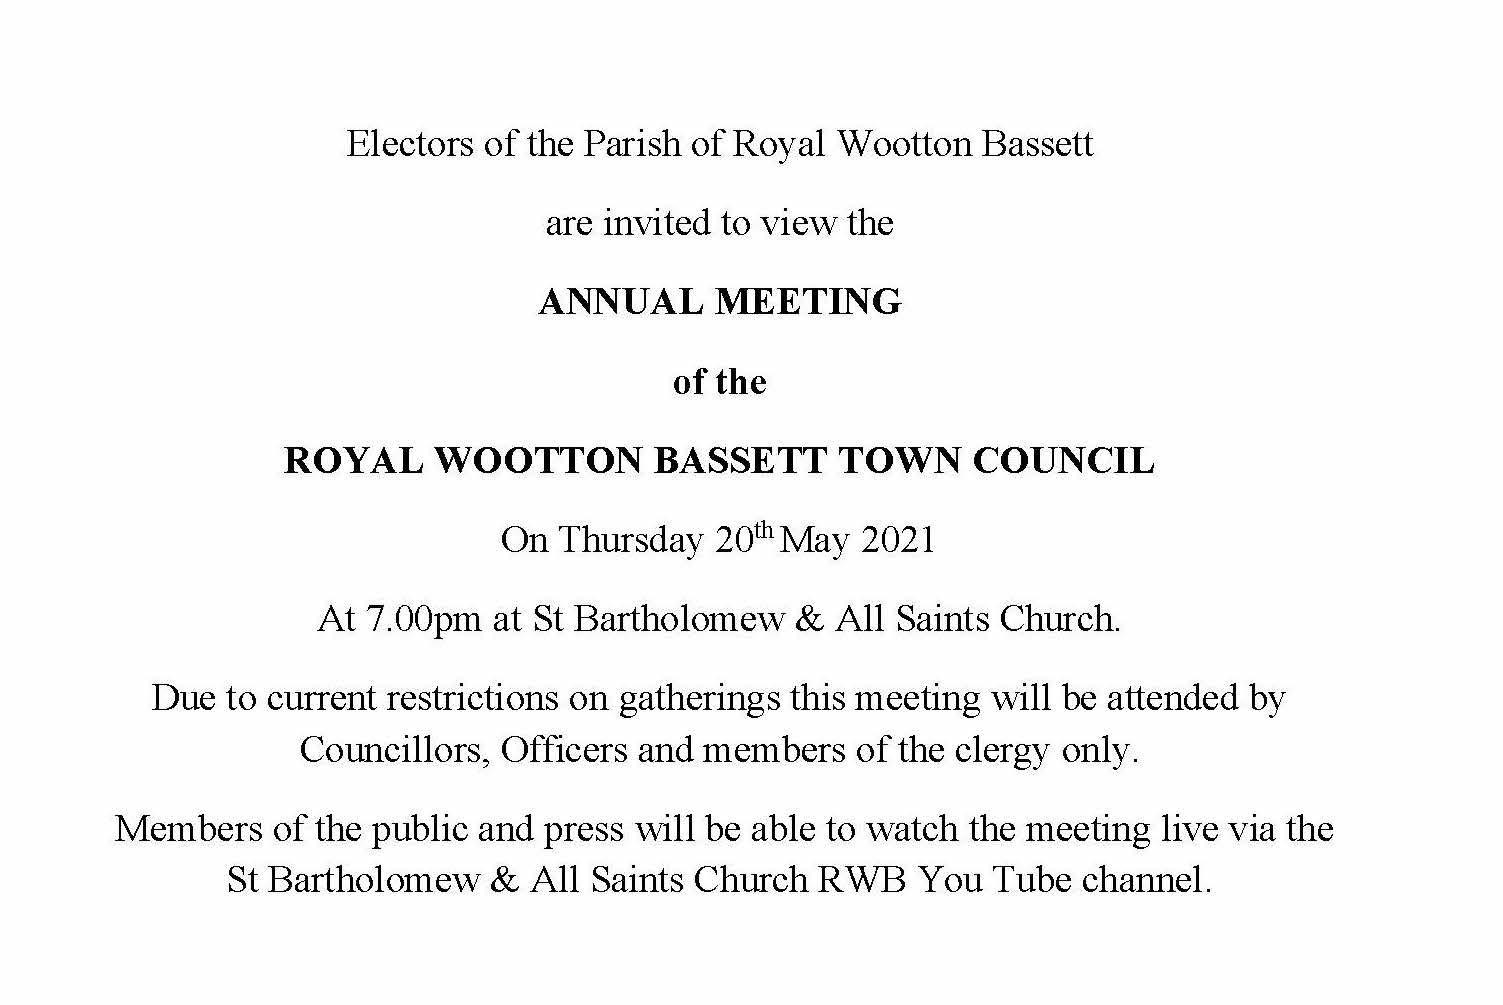 Full Council Meeting Notice Thursday 20th May 2021